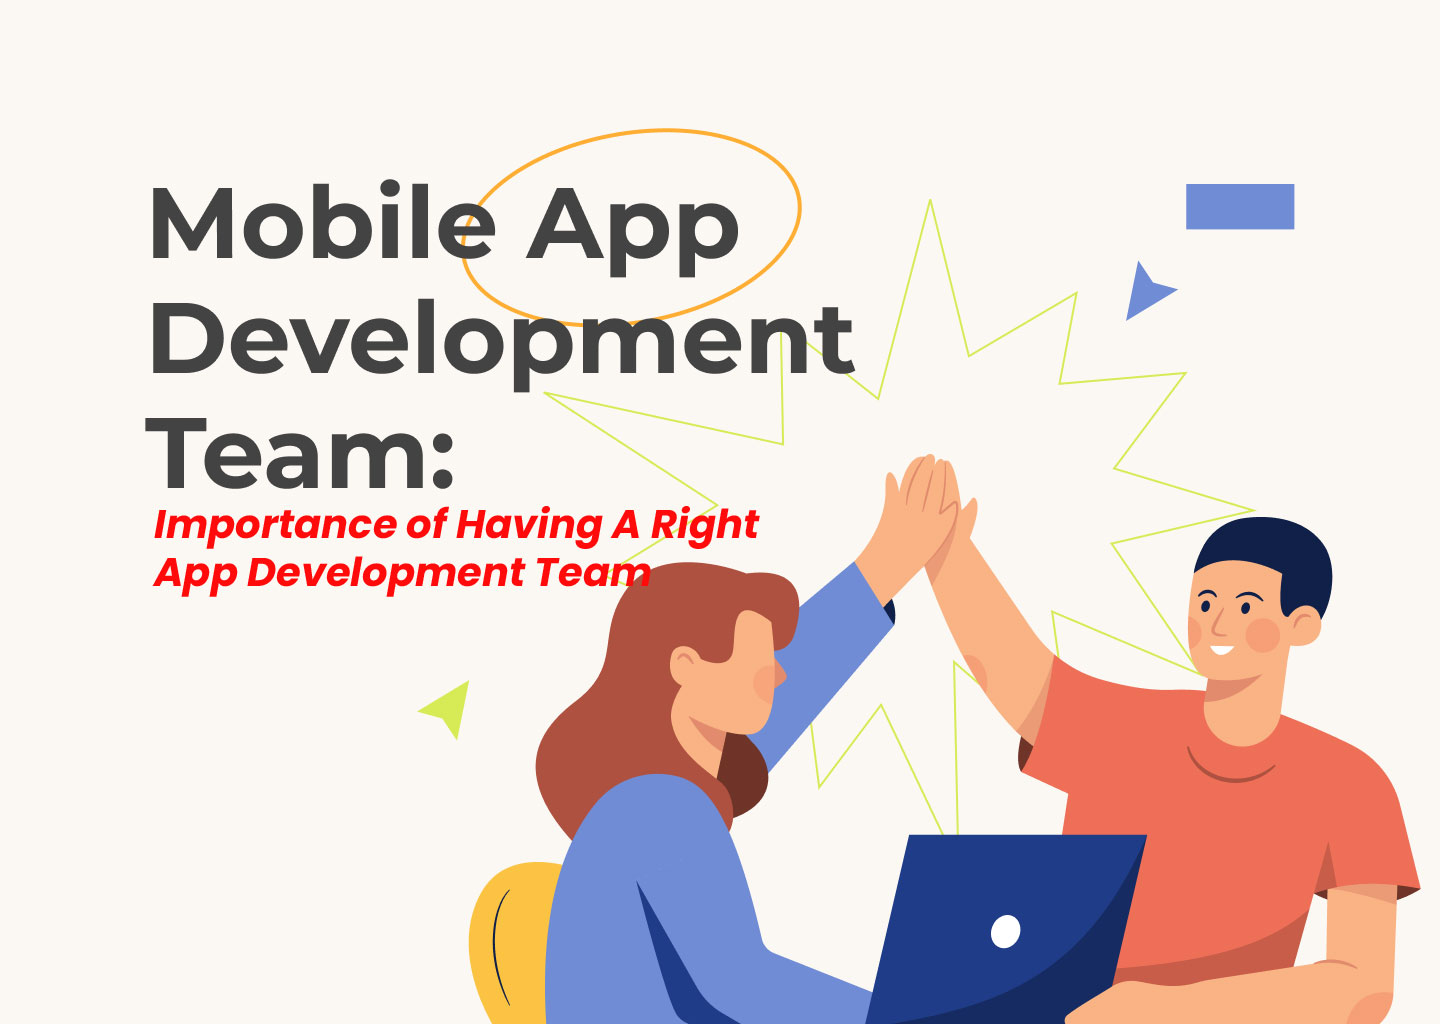 Importance of Having A Right App Development Team With The Right Skills